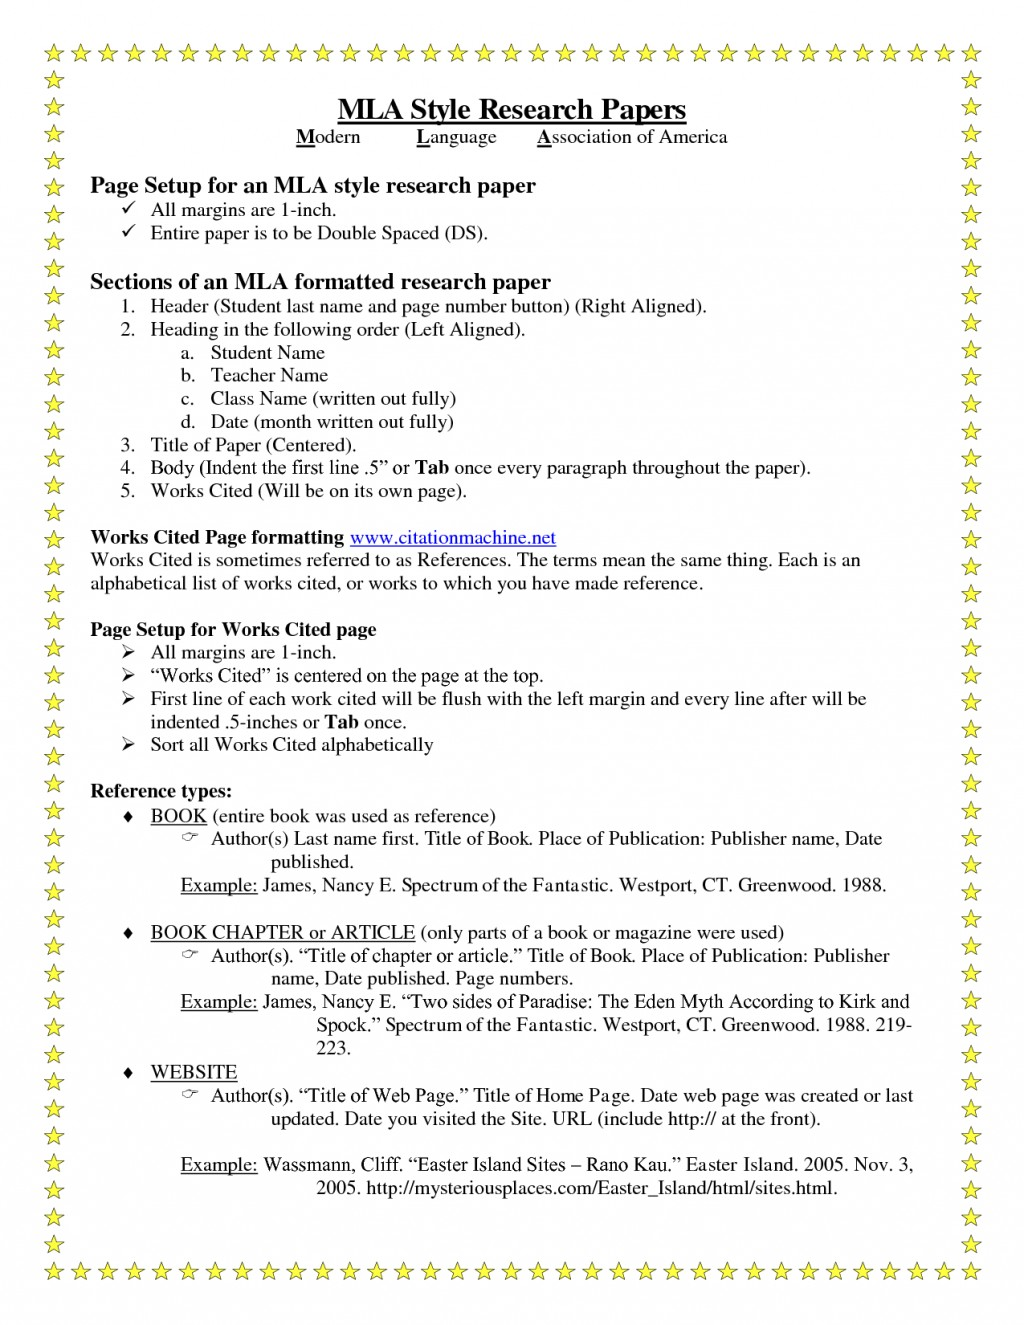 012 Research Paper Order Of Headings In Parts Mla Breathtaking A Format Which The Following Is Not Double-spaced Large